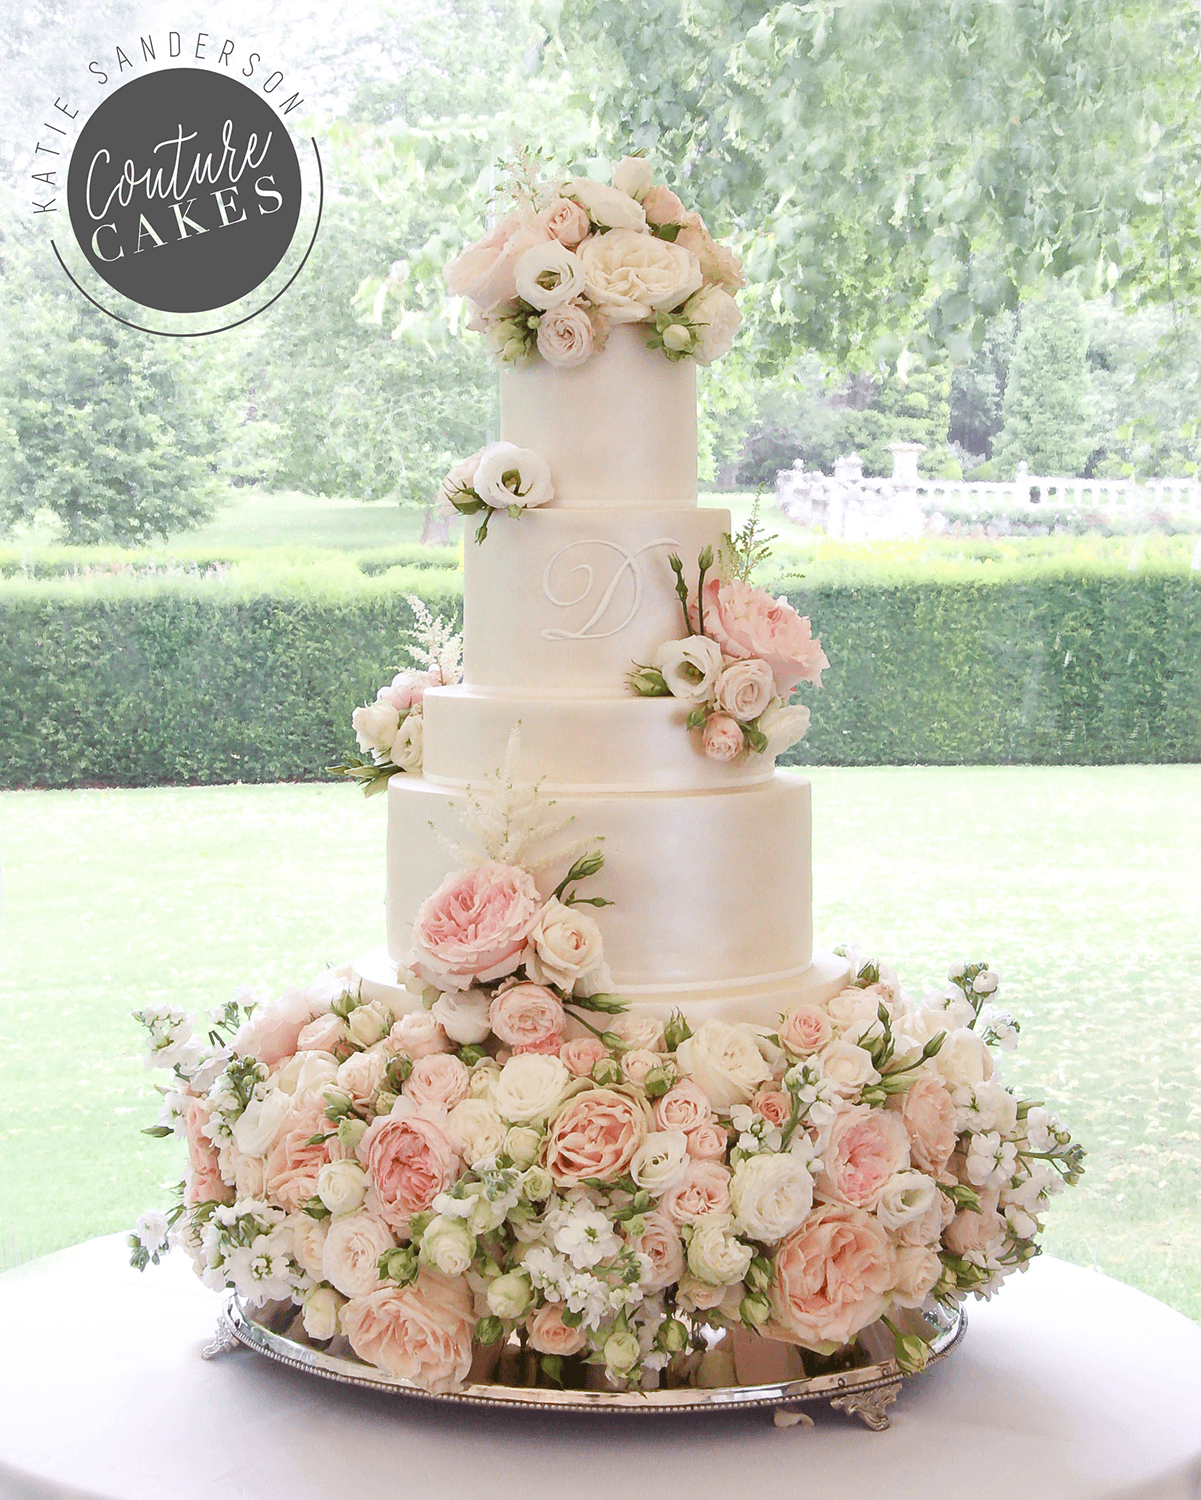 wedding cake with flowers on the side tiered wedding cakes couture cakes 26884